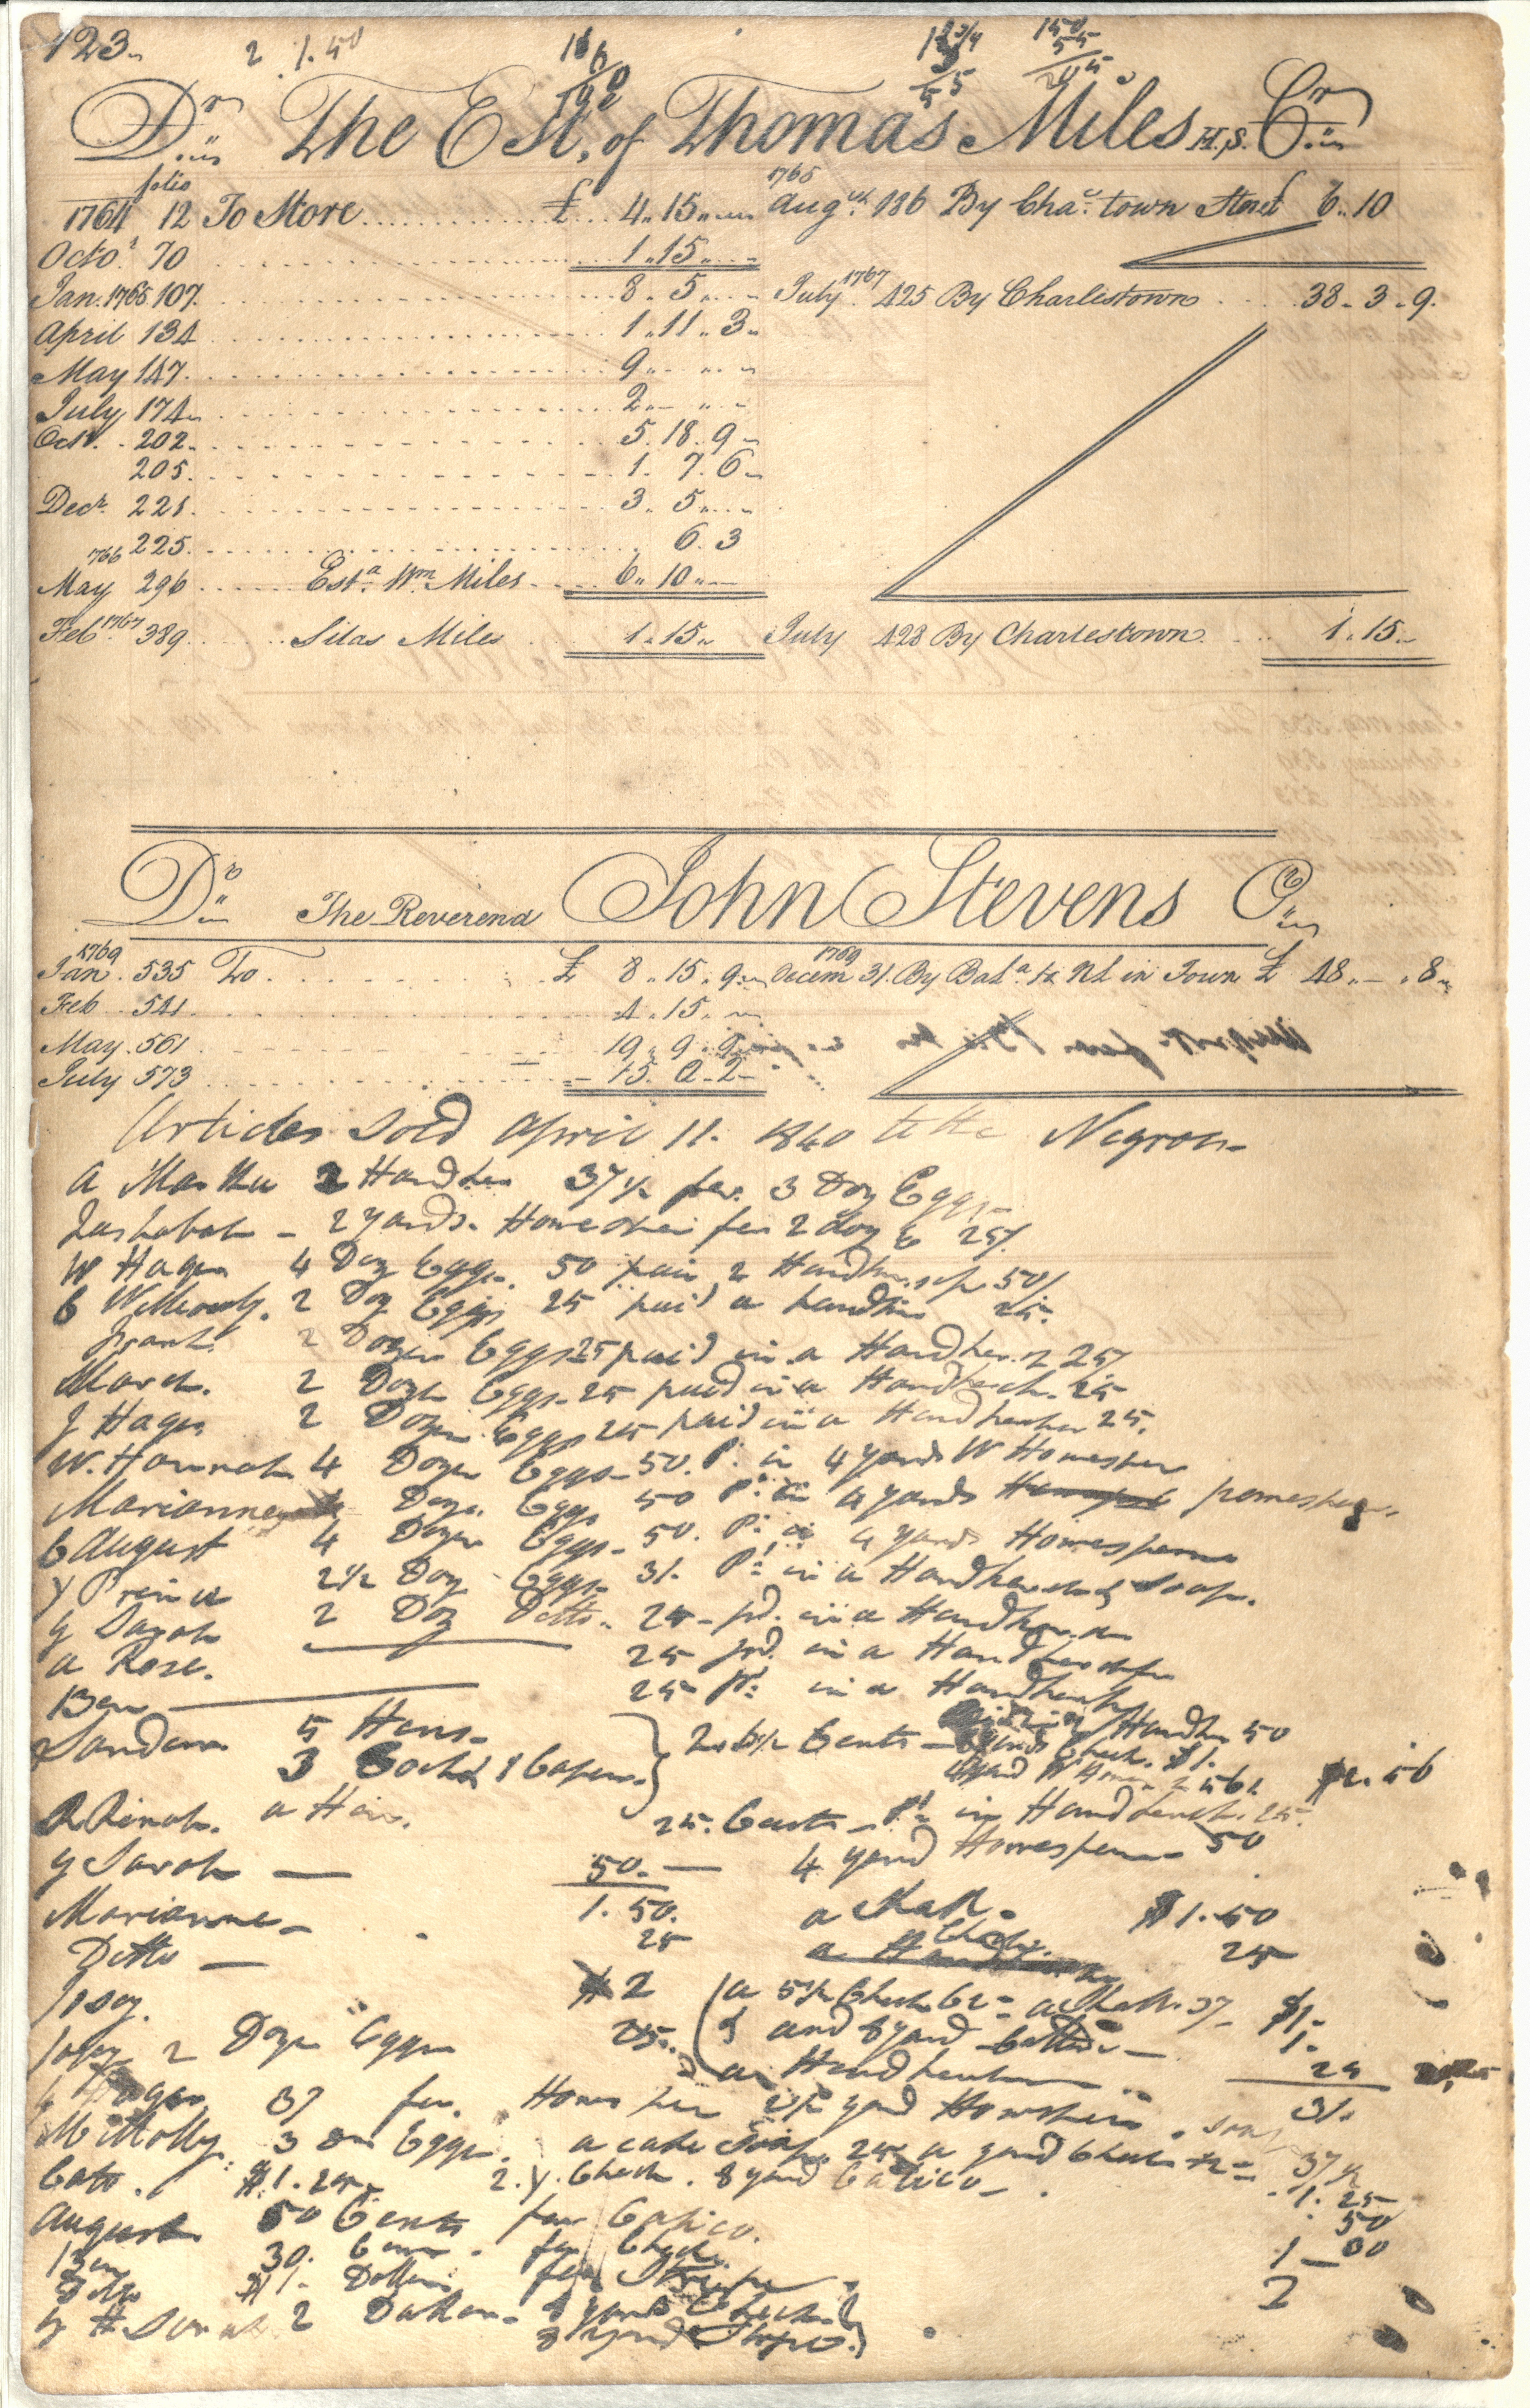 Plowden Weston's Business Ledger, page 123